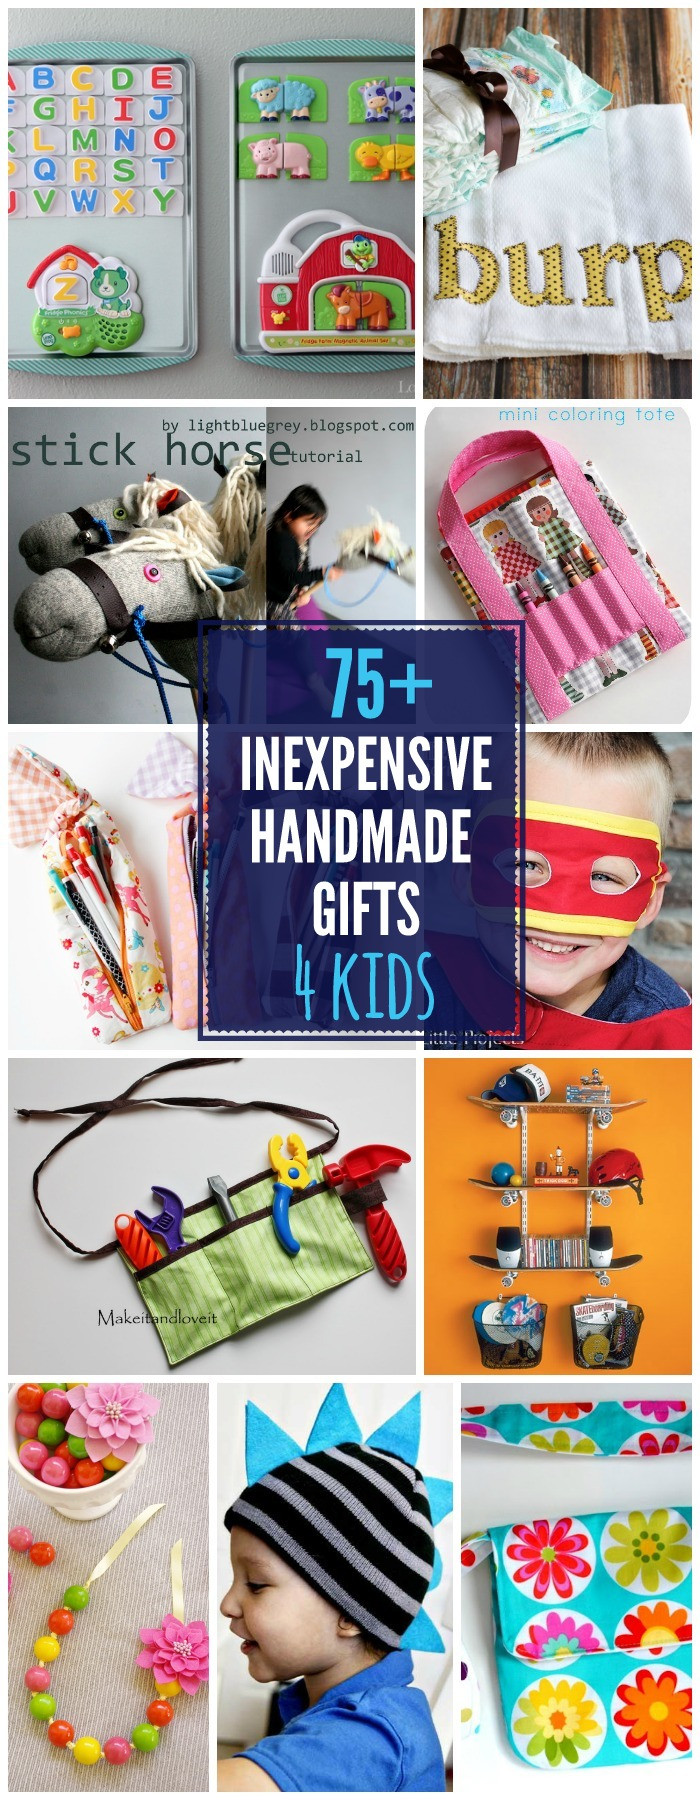 Best ideas about Gift Ideas For Children . Save or Pin Inexpensive Gift Ideas Now.